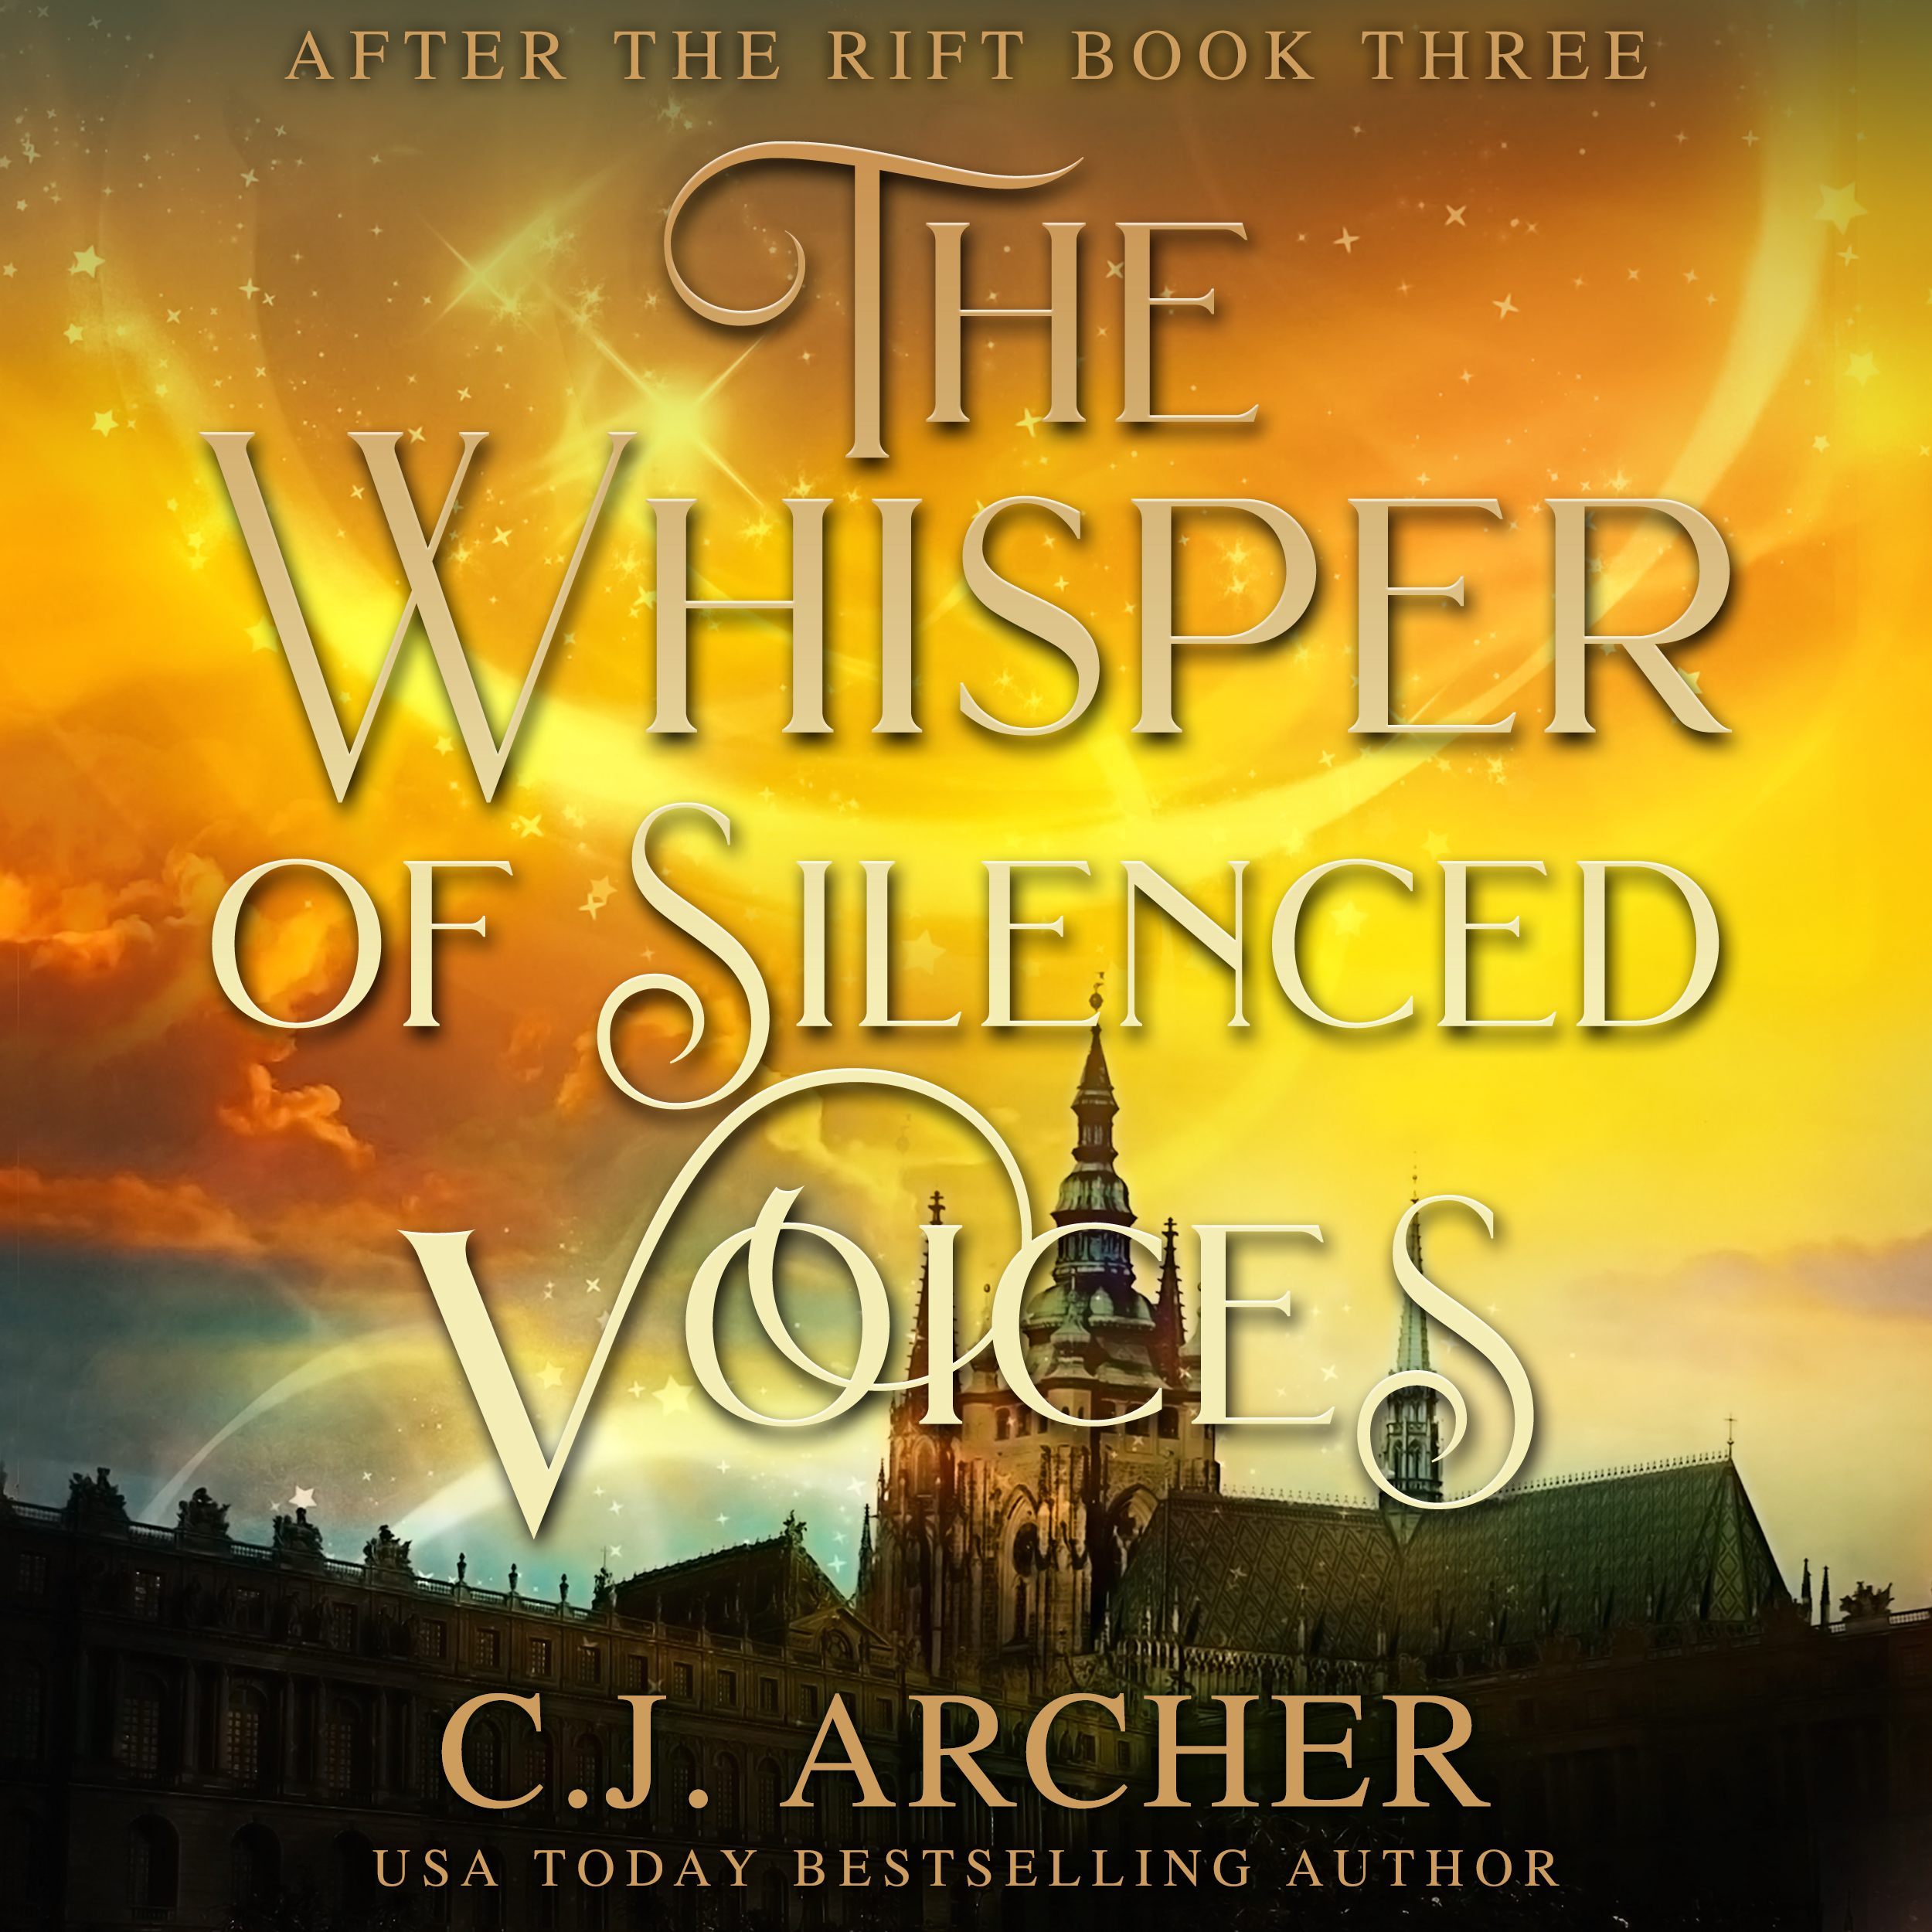 The Whisper of Silenced Voices audiobook by CJ Archer